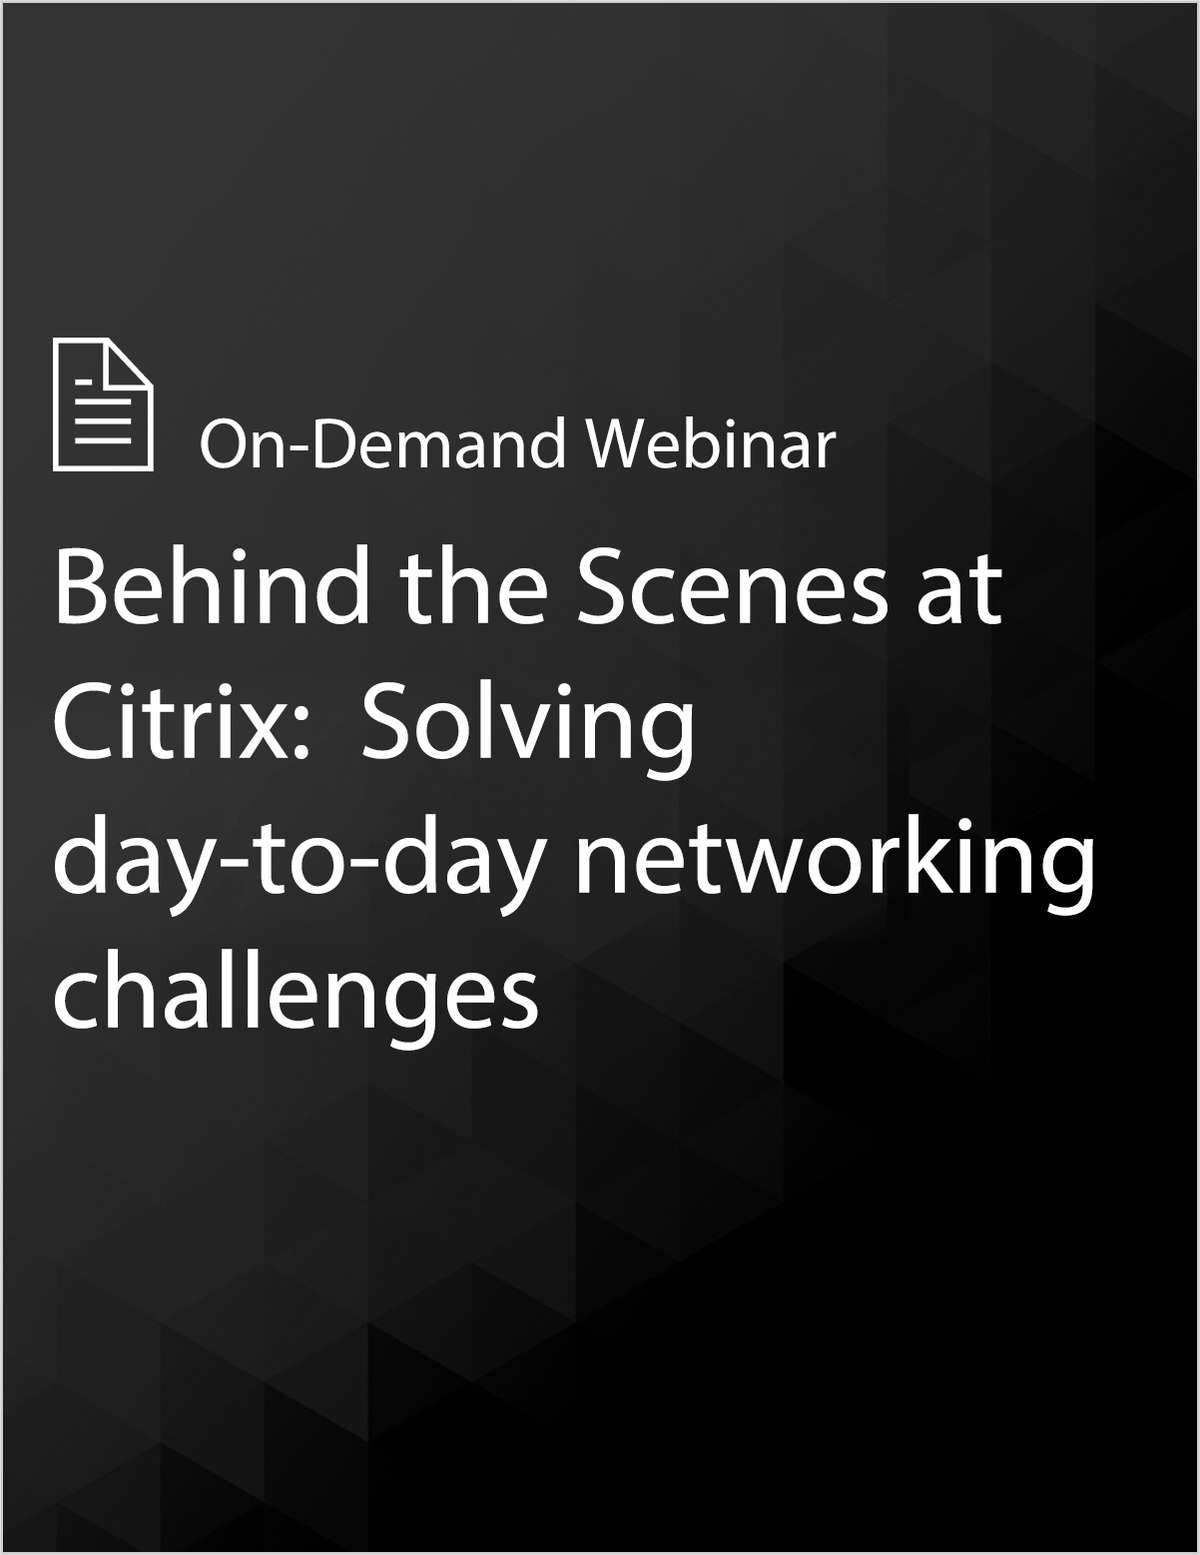 Behind the Scenes at Citrix:  Solving day-to-day networking challenges